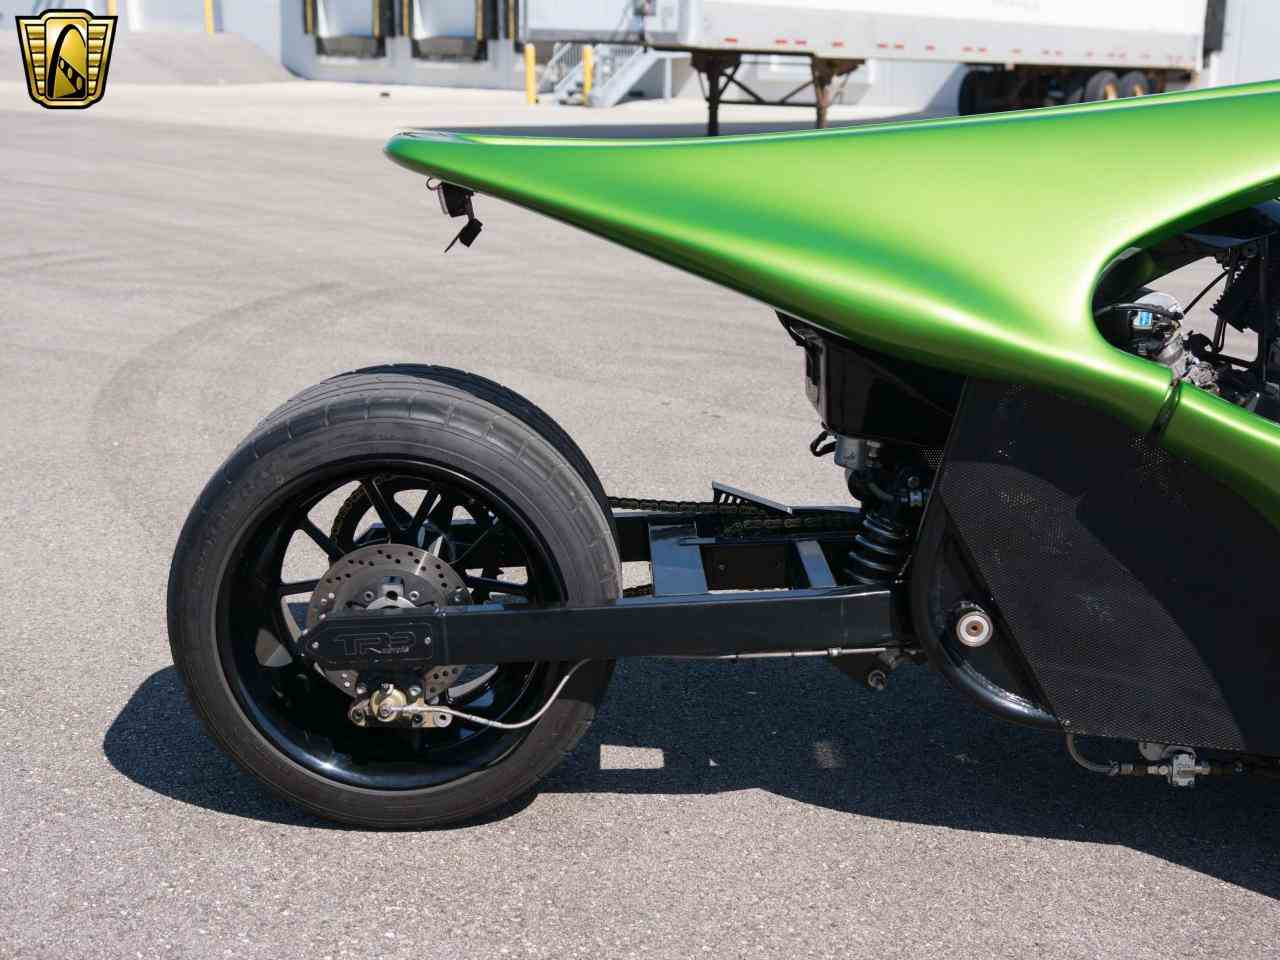 Large Picture of 2008 Kawasaki T-Rex Replica located in Wisconsin - $44,595.00 - L7NA